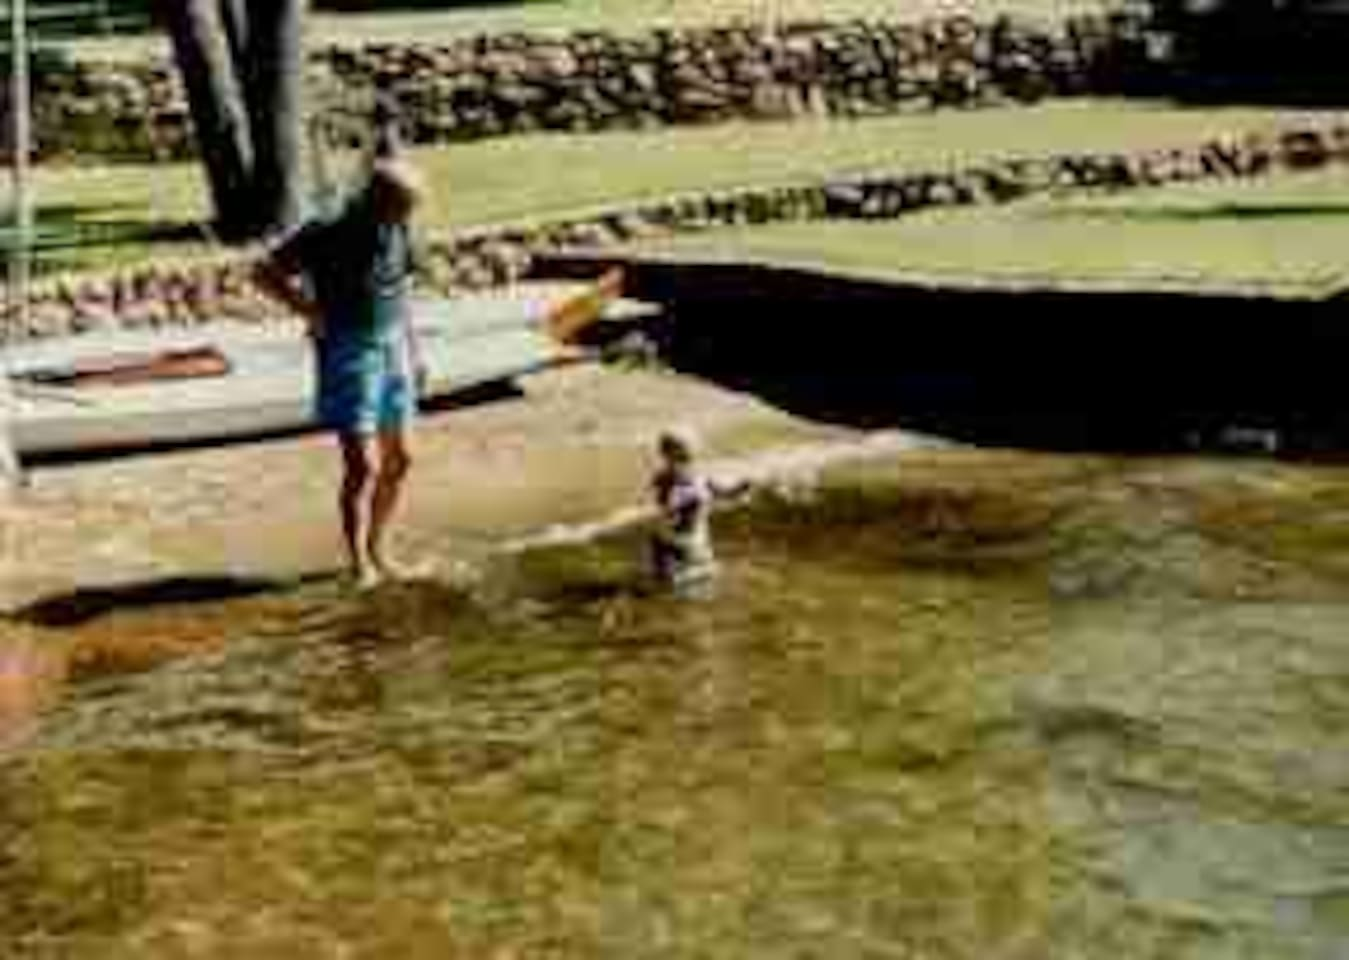 1981 Grandpa letting grandson play on beach.